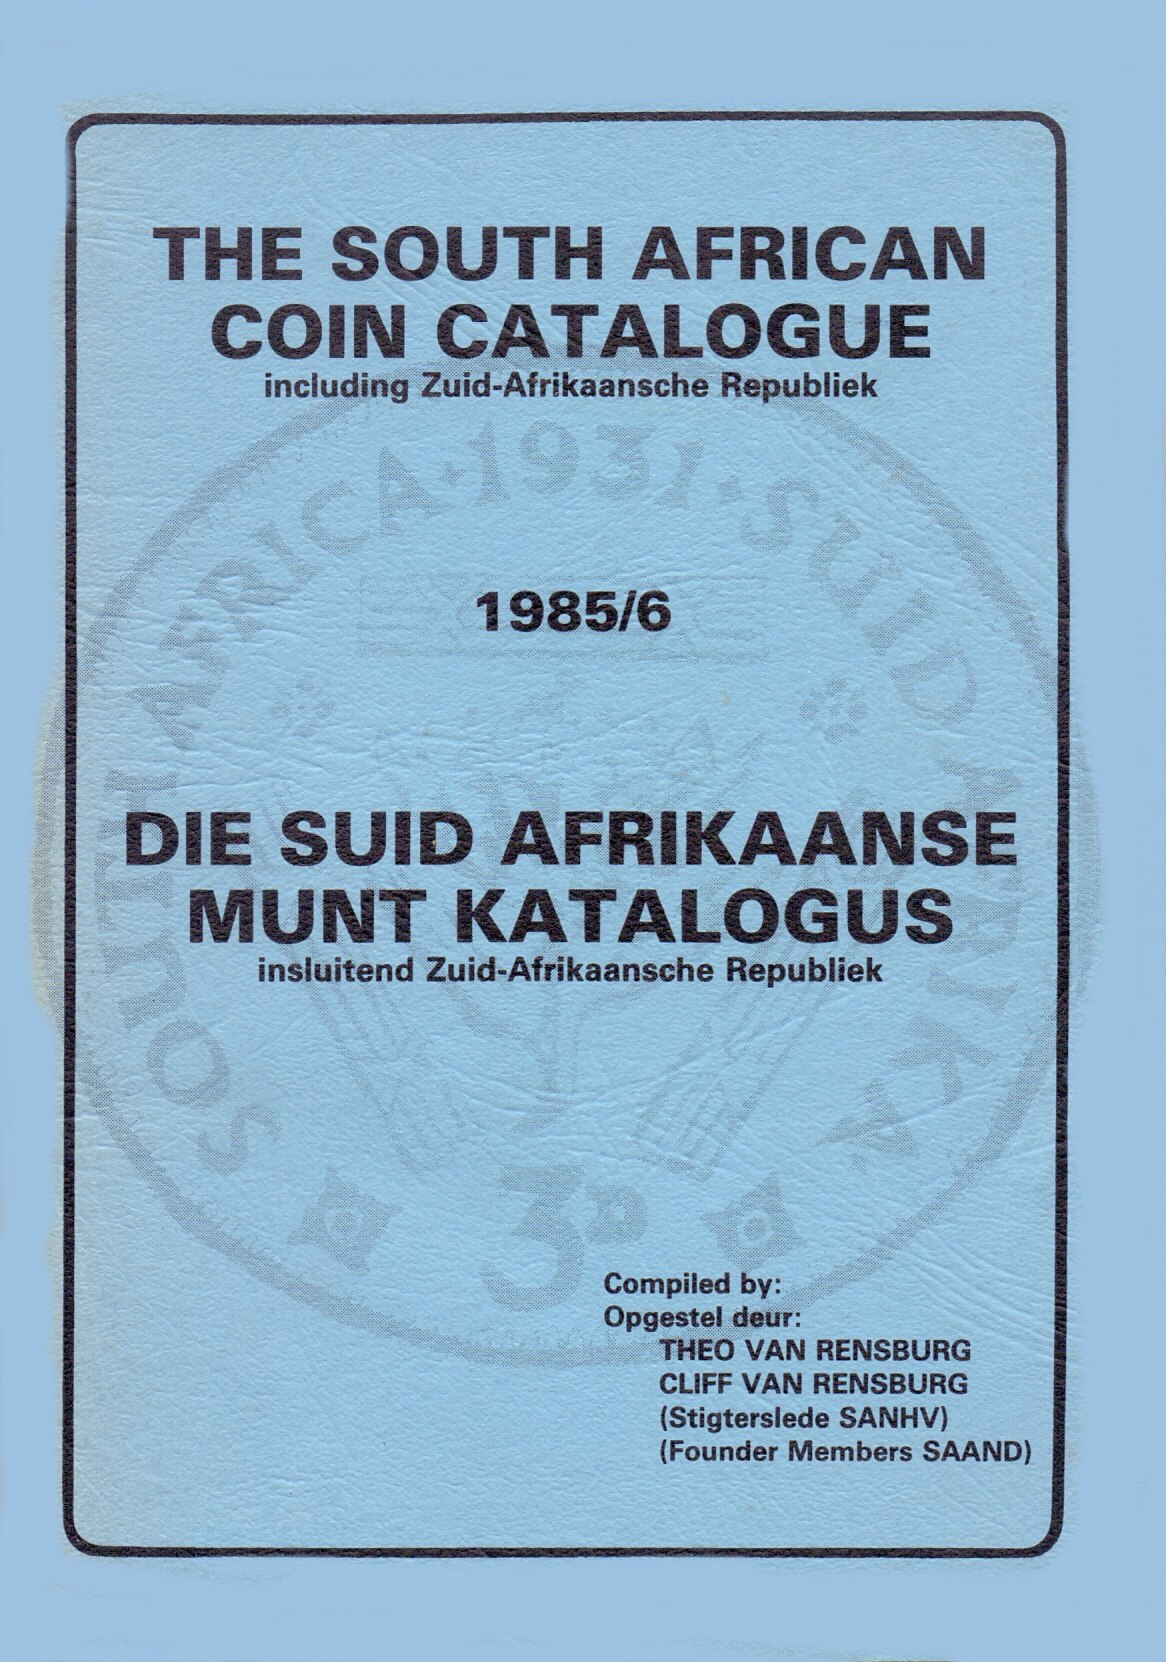 Randburg Coin Catalogue 1985 to 1986